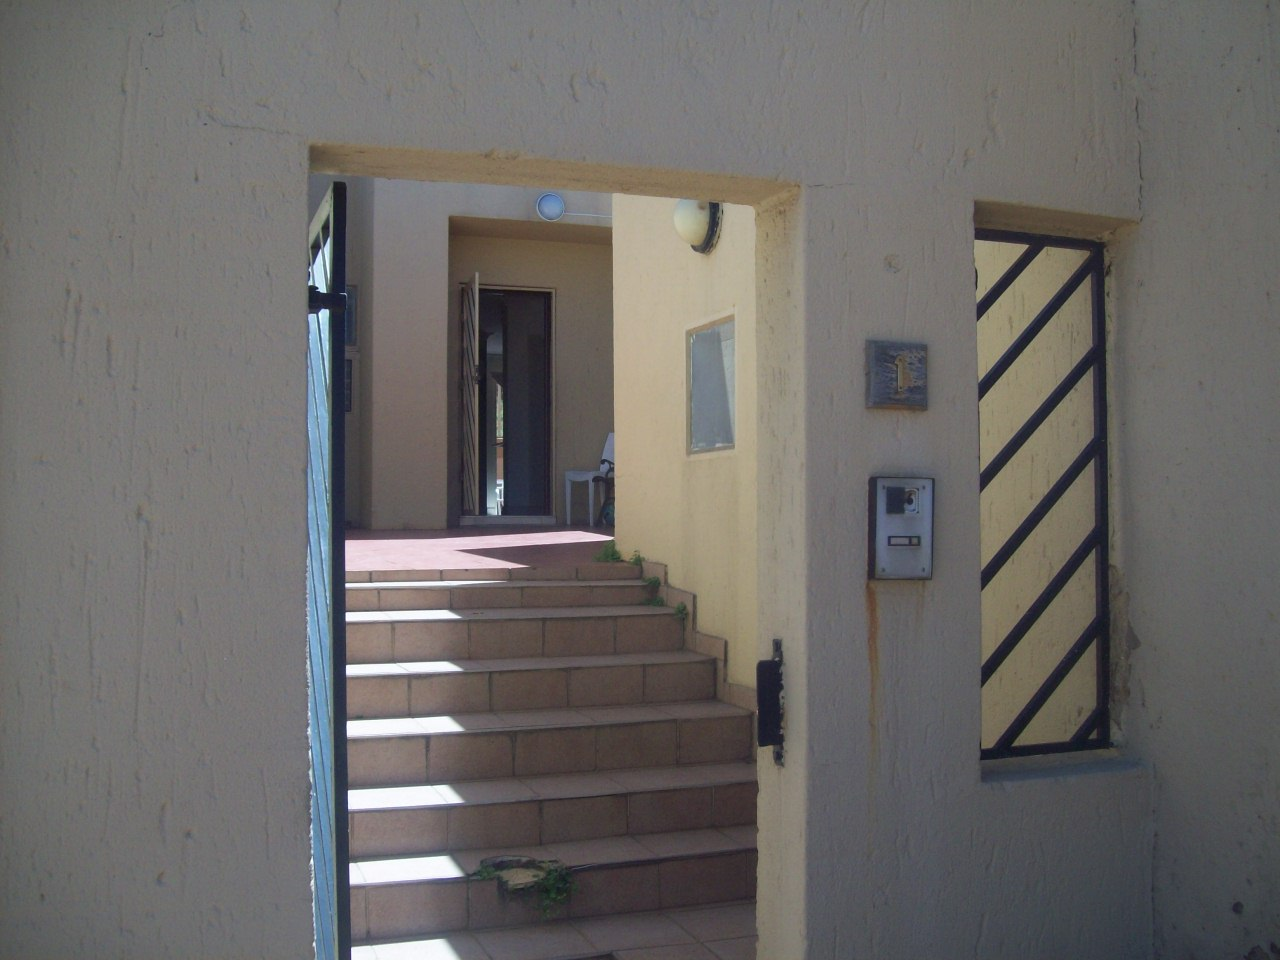 3 Bedroom Townhouse for sale in Bassonia ENT0071278 : photo#6